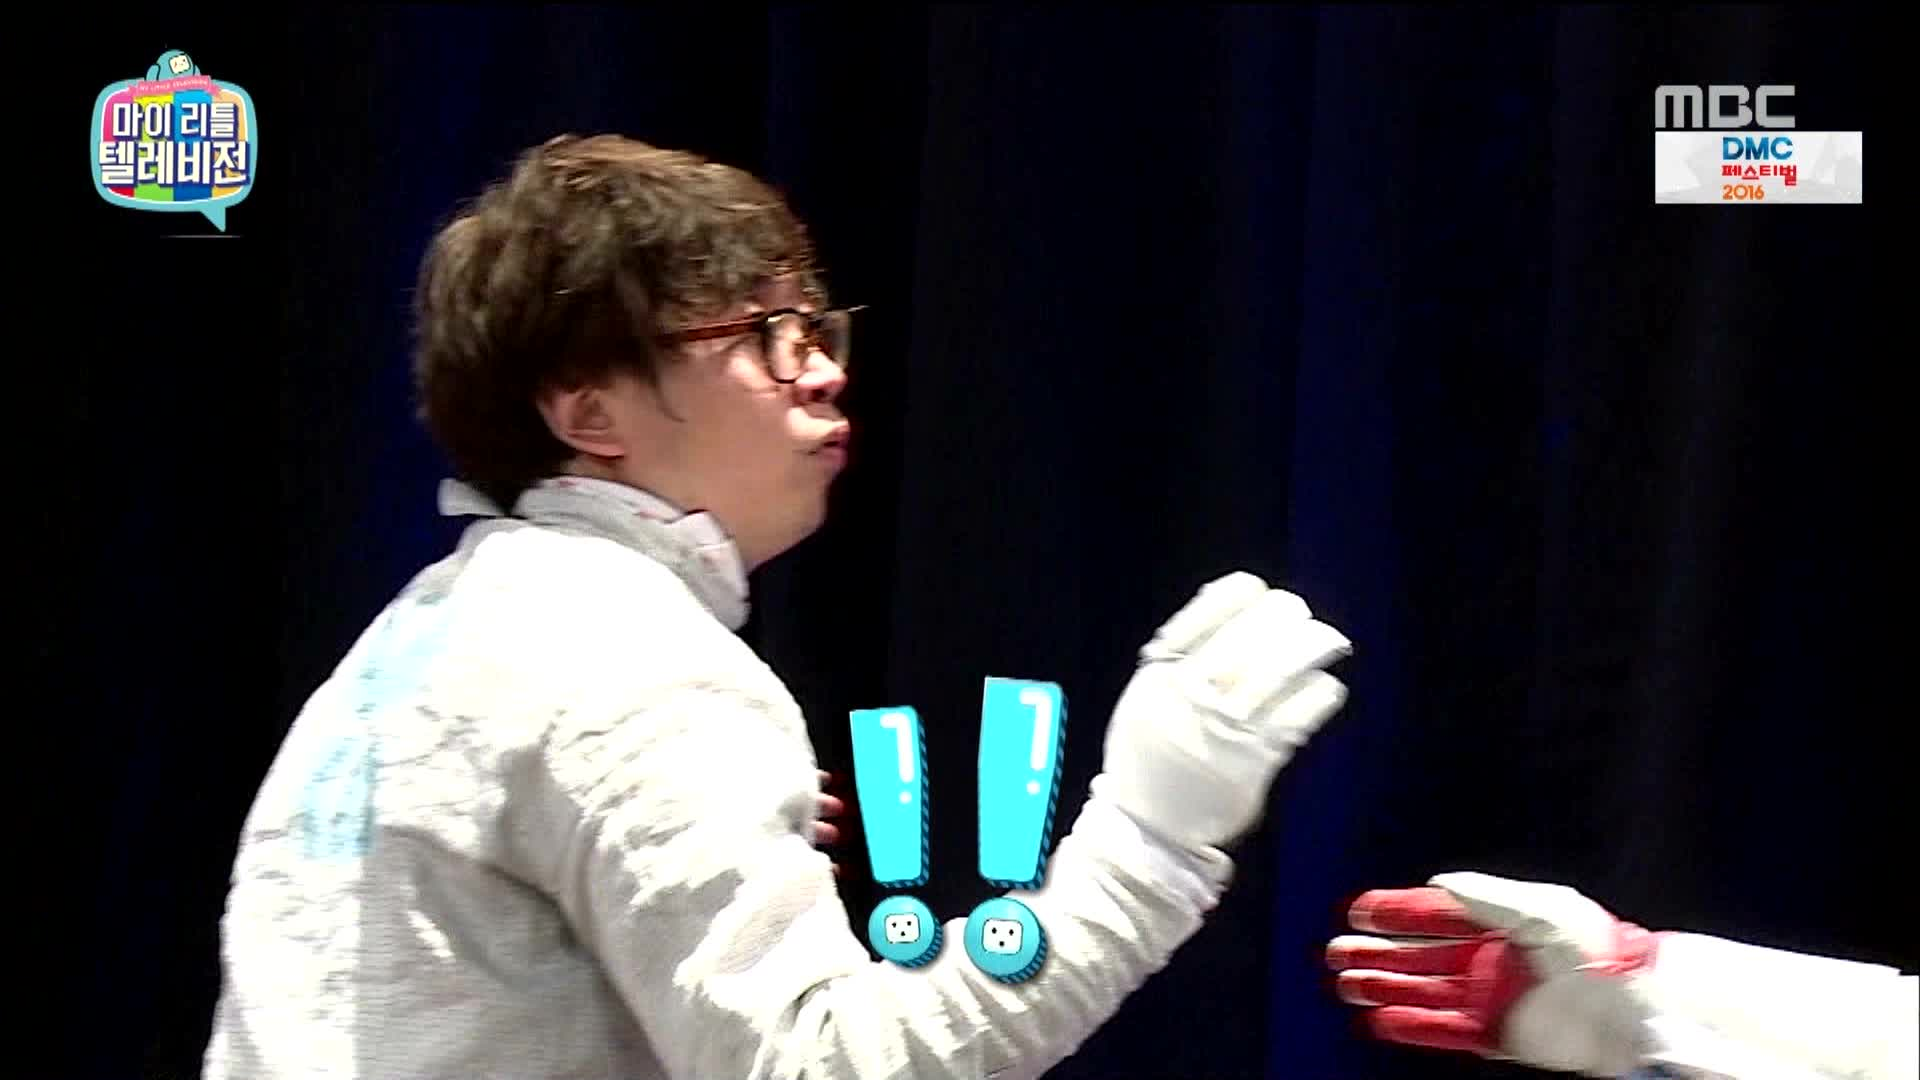 asianpeoplegifs, koreanvariety, theangrycamelgifs, Fencing GIFs